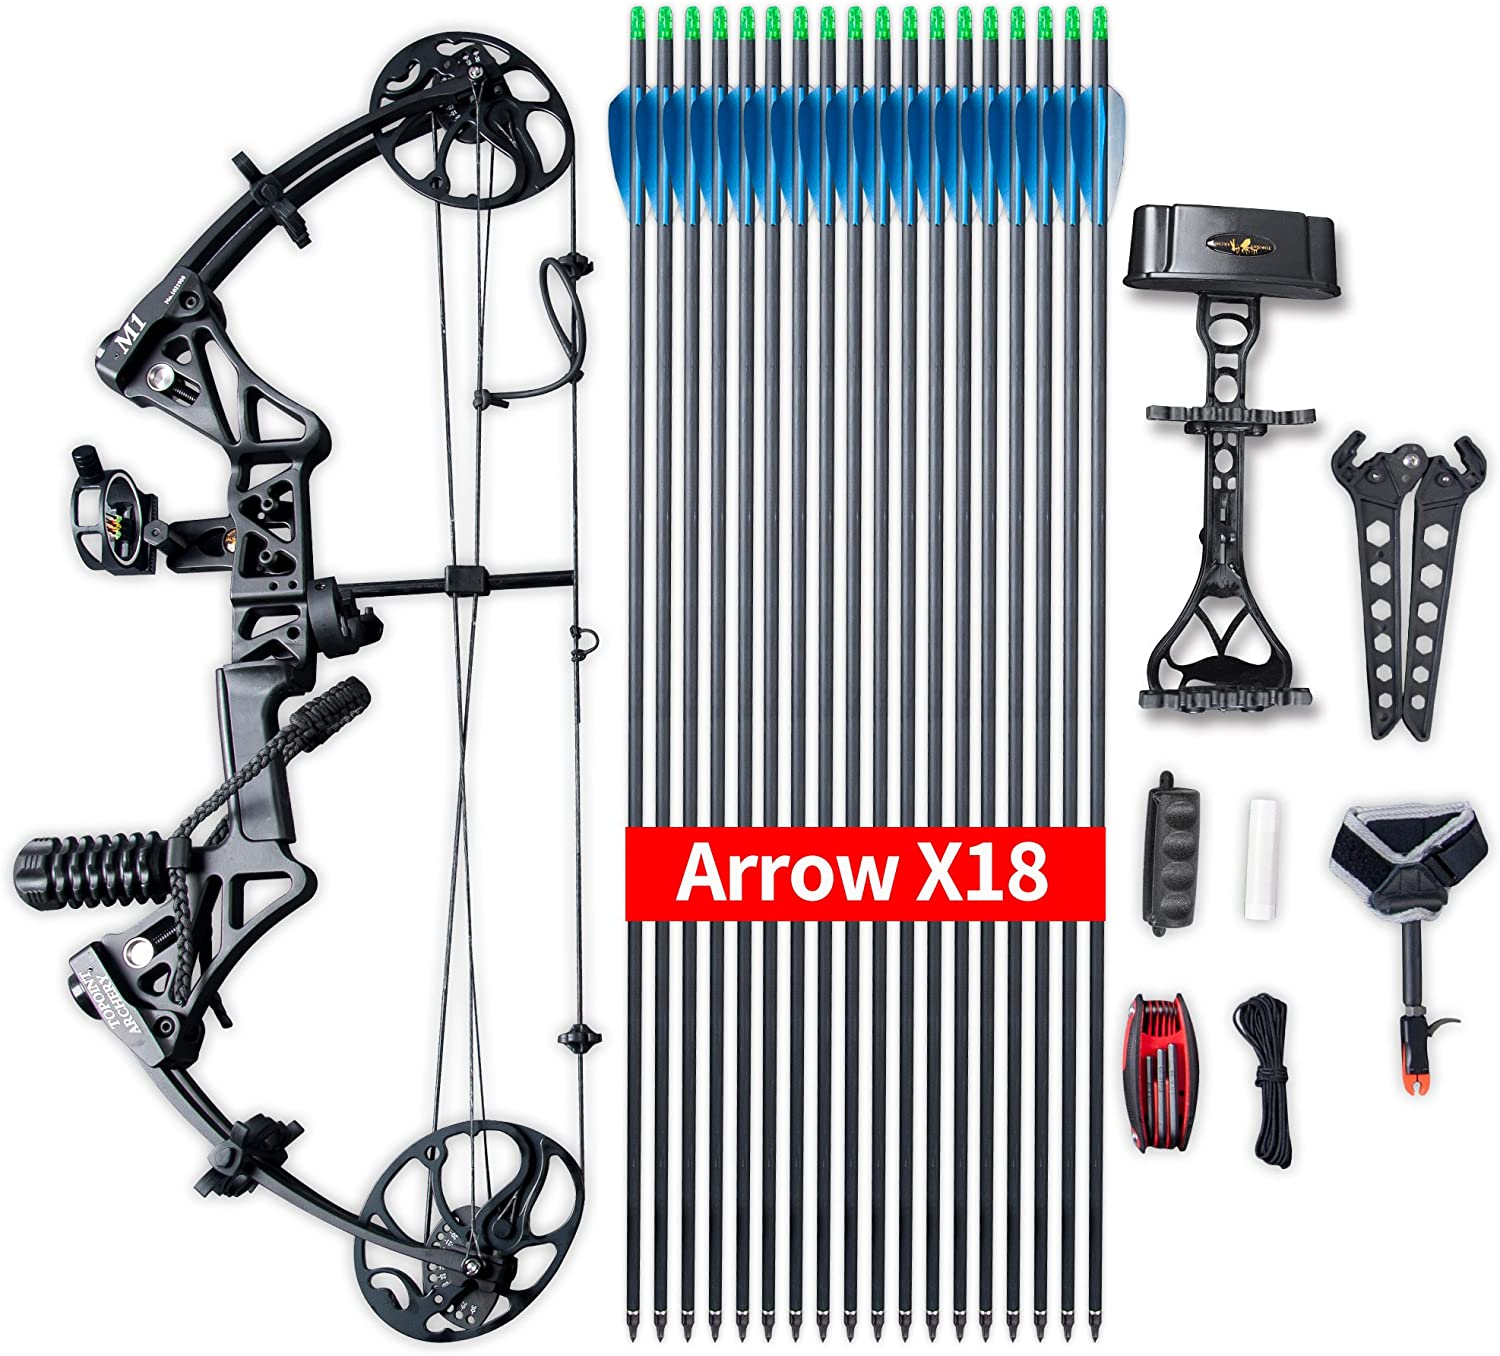 Compound Bow Topoint Archery Package M1